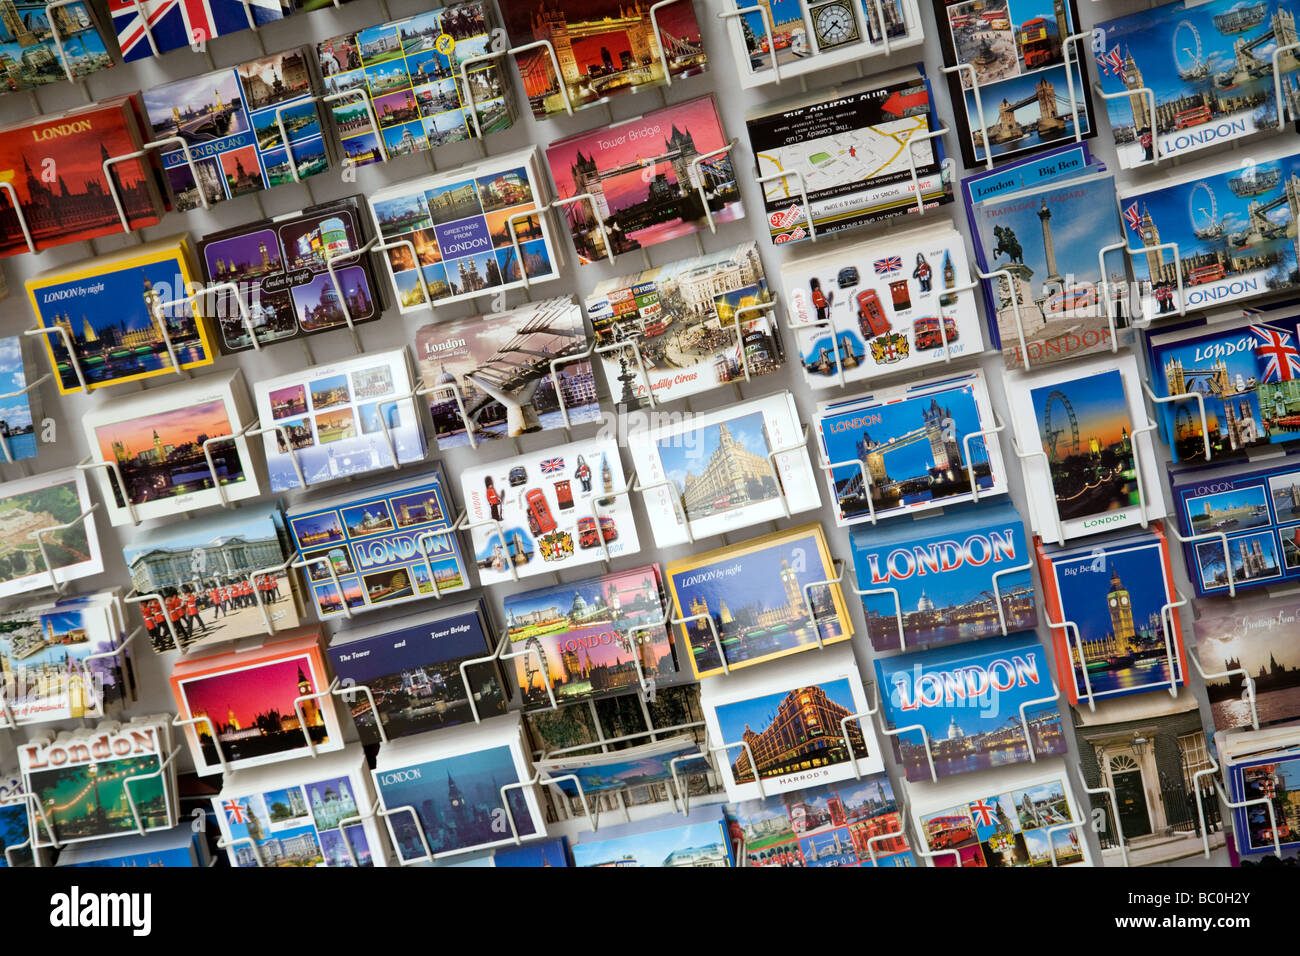 Postcards for sale in a stall in the west end of London, UK - Stock Image